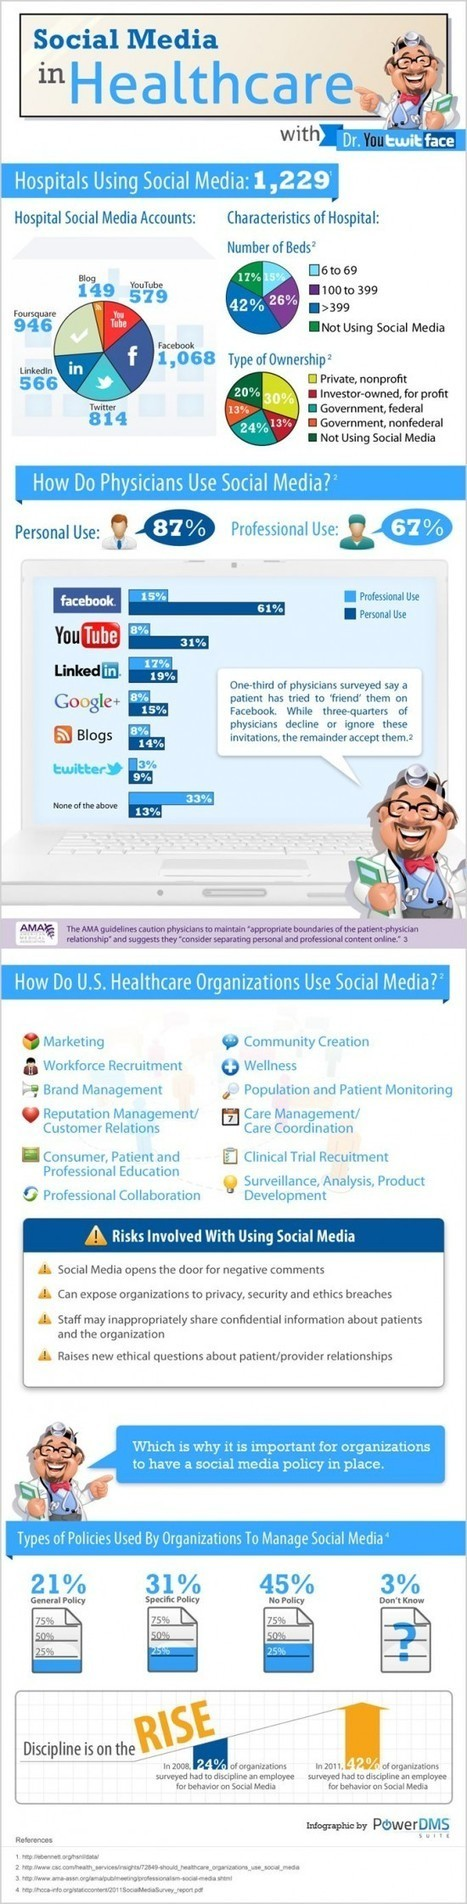 #SocialMedia en el sector Salud  #INFOGRAPHIC #infografia | Brújula Analógica-Digital. | Scoop.it